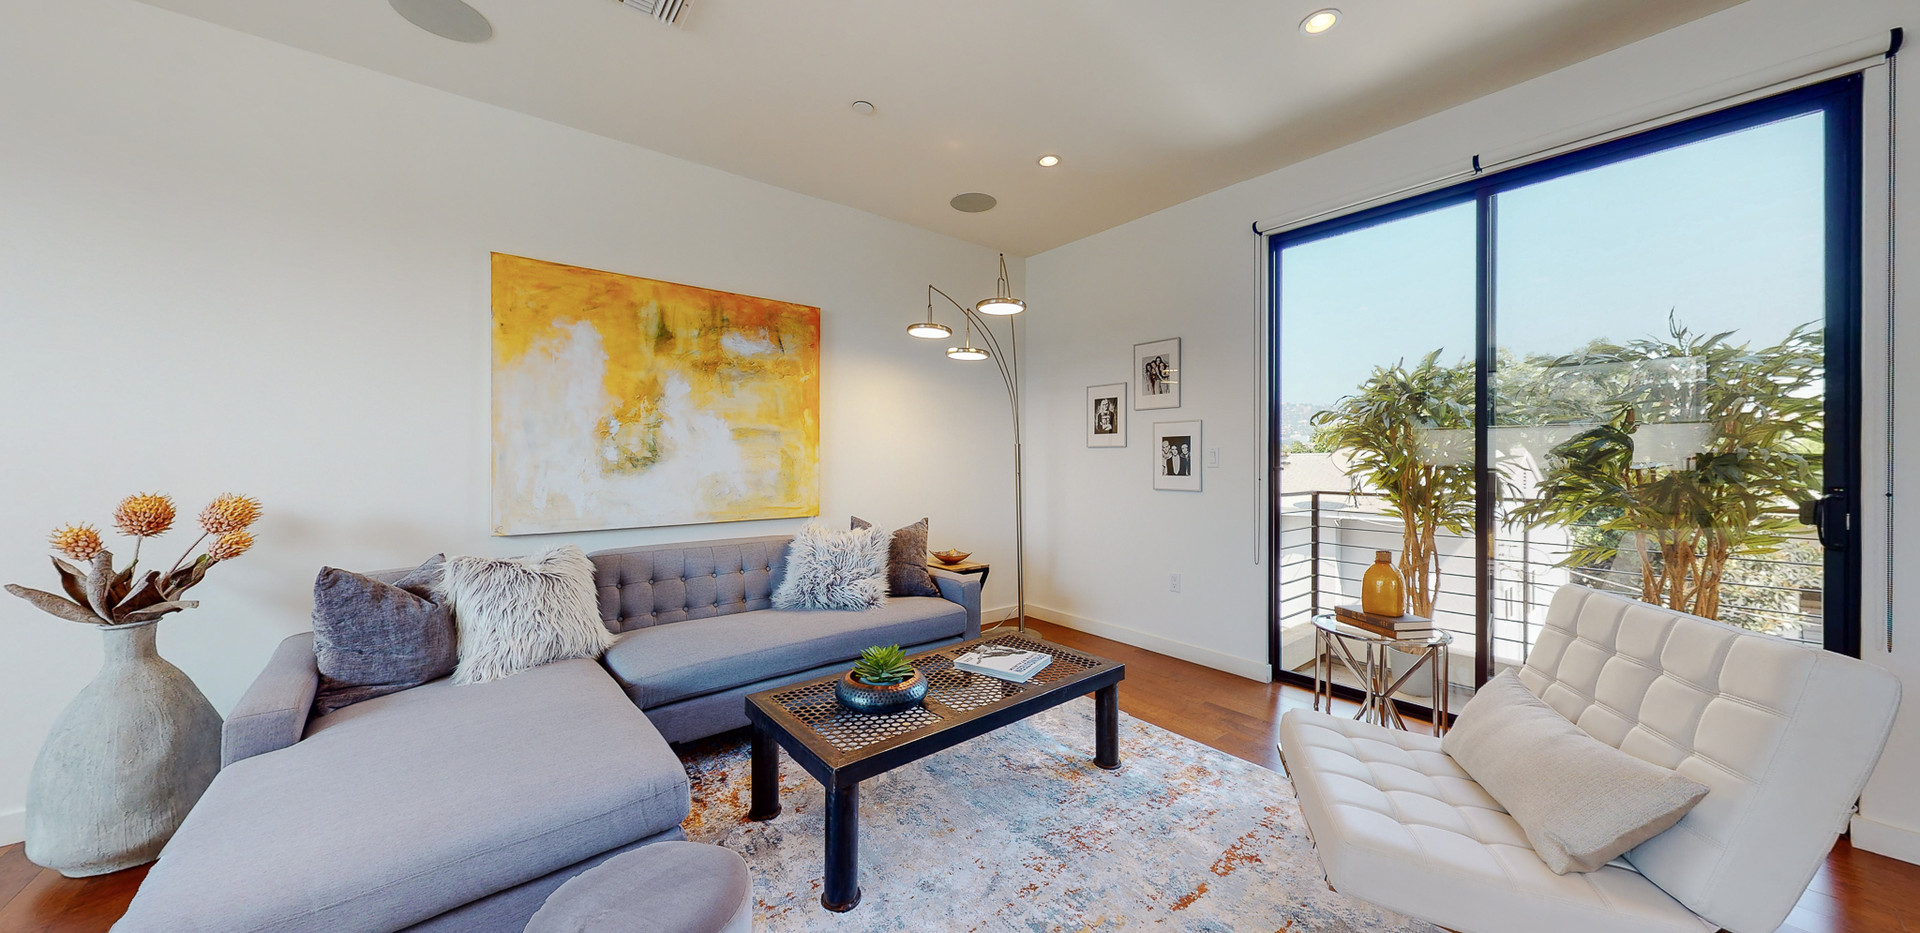 146 S Hayworth Ave-27.JPG